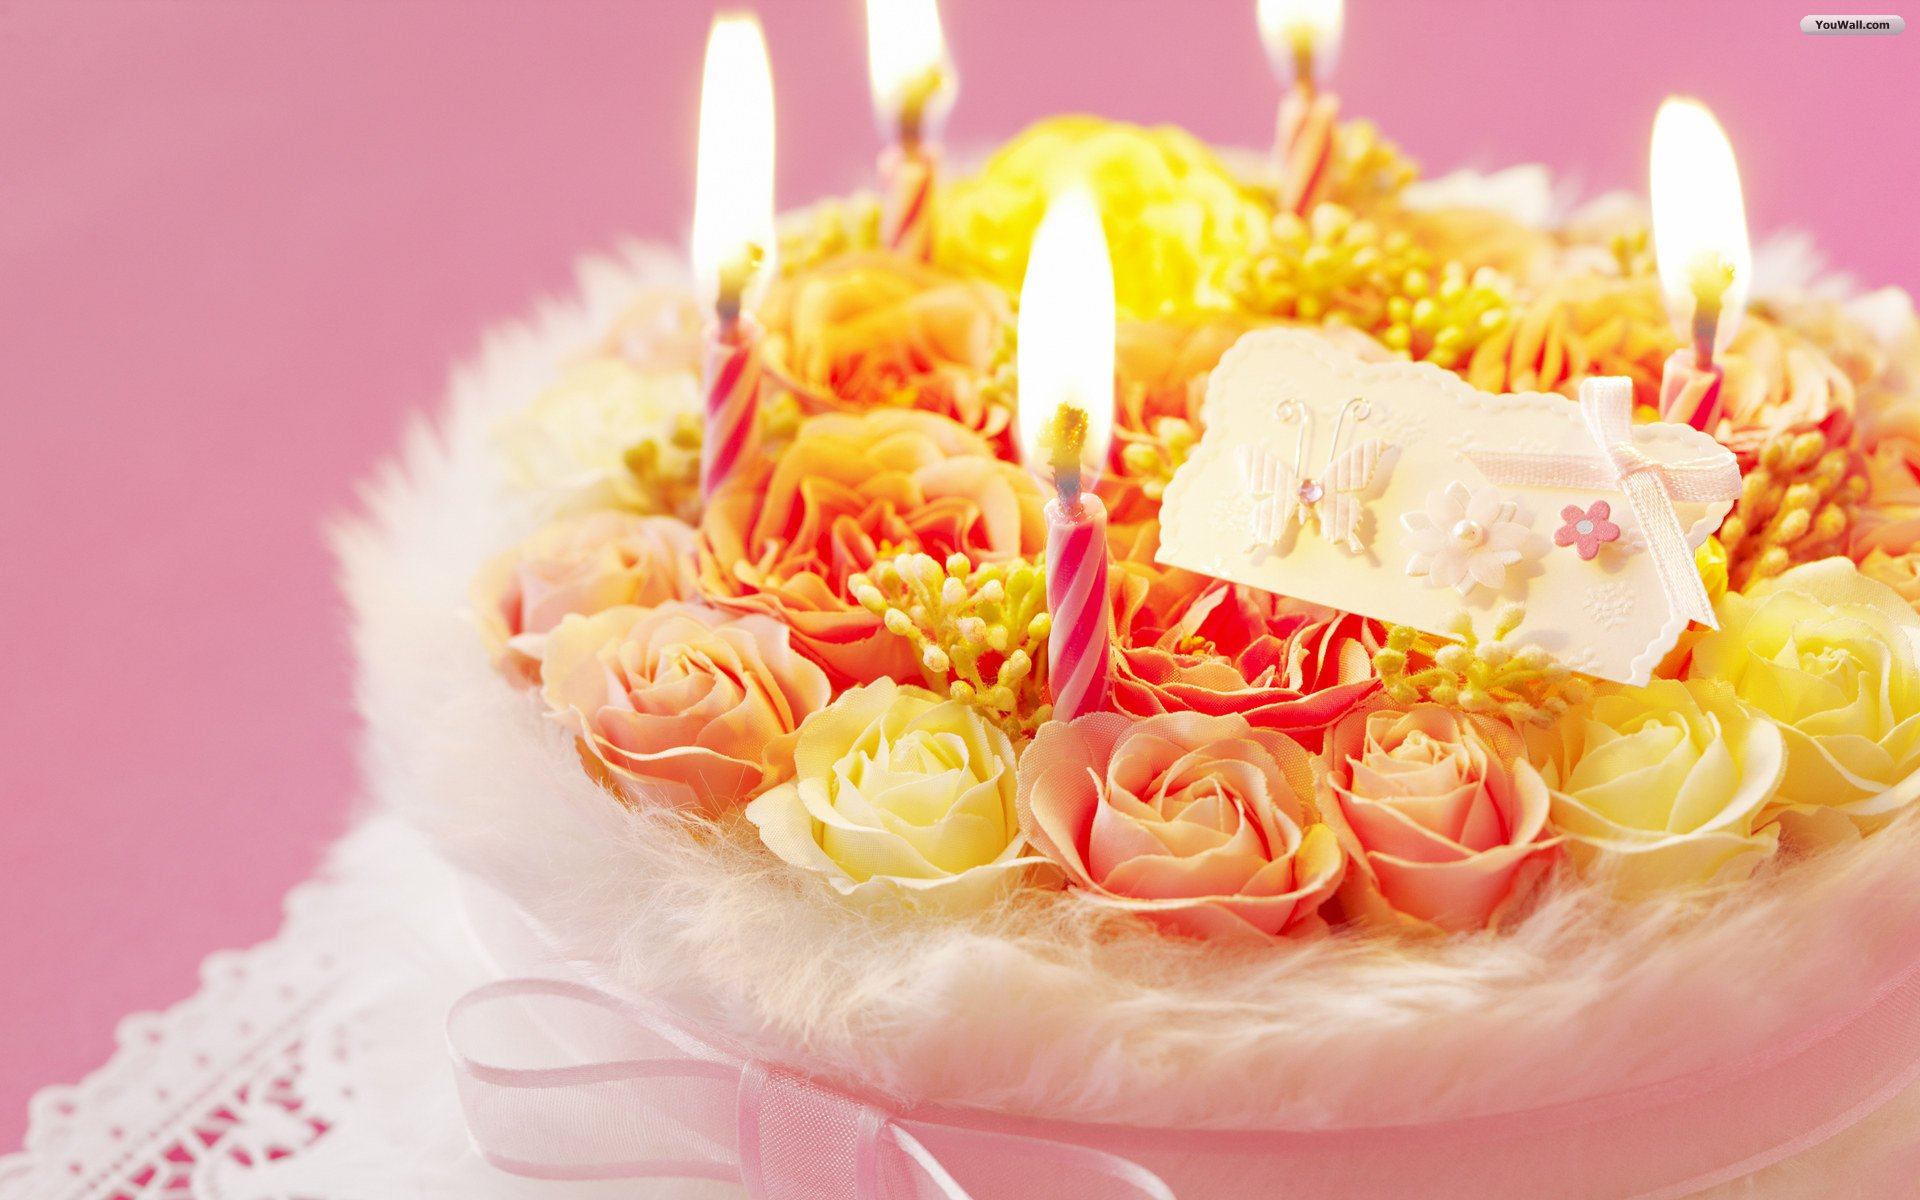 Cake Happy Birthday Wallpaper HD 1920x1200